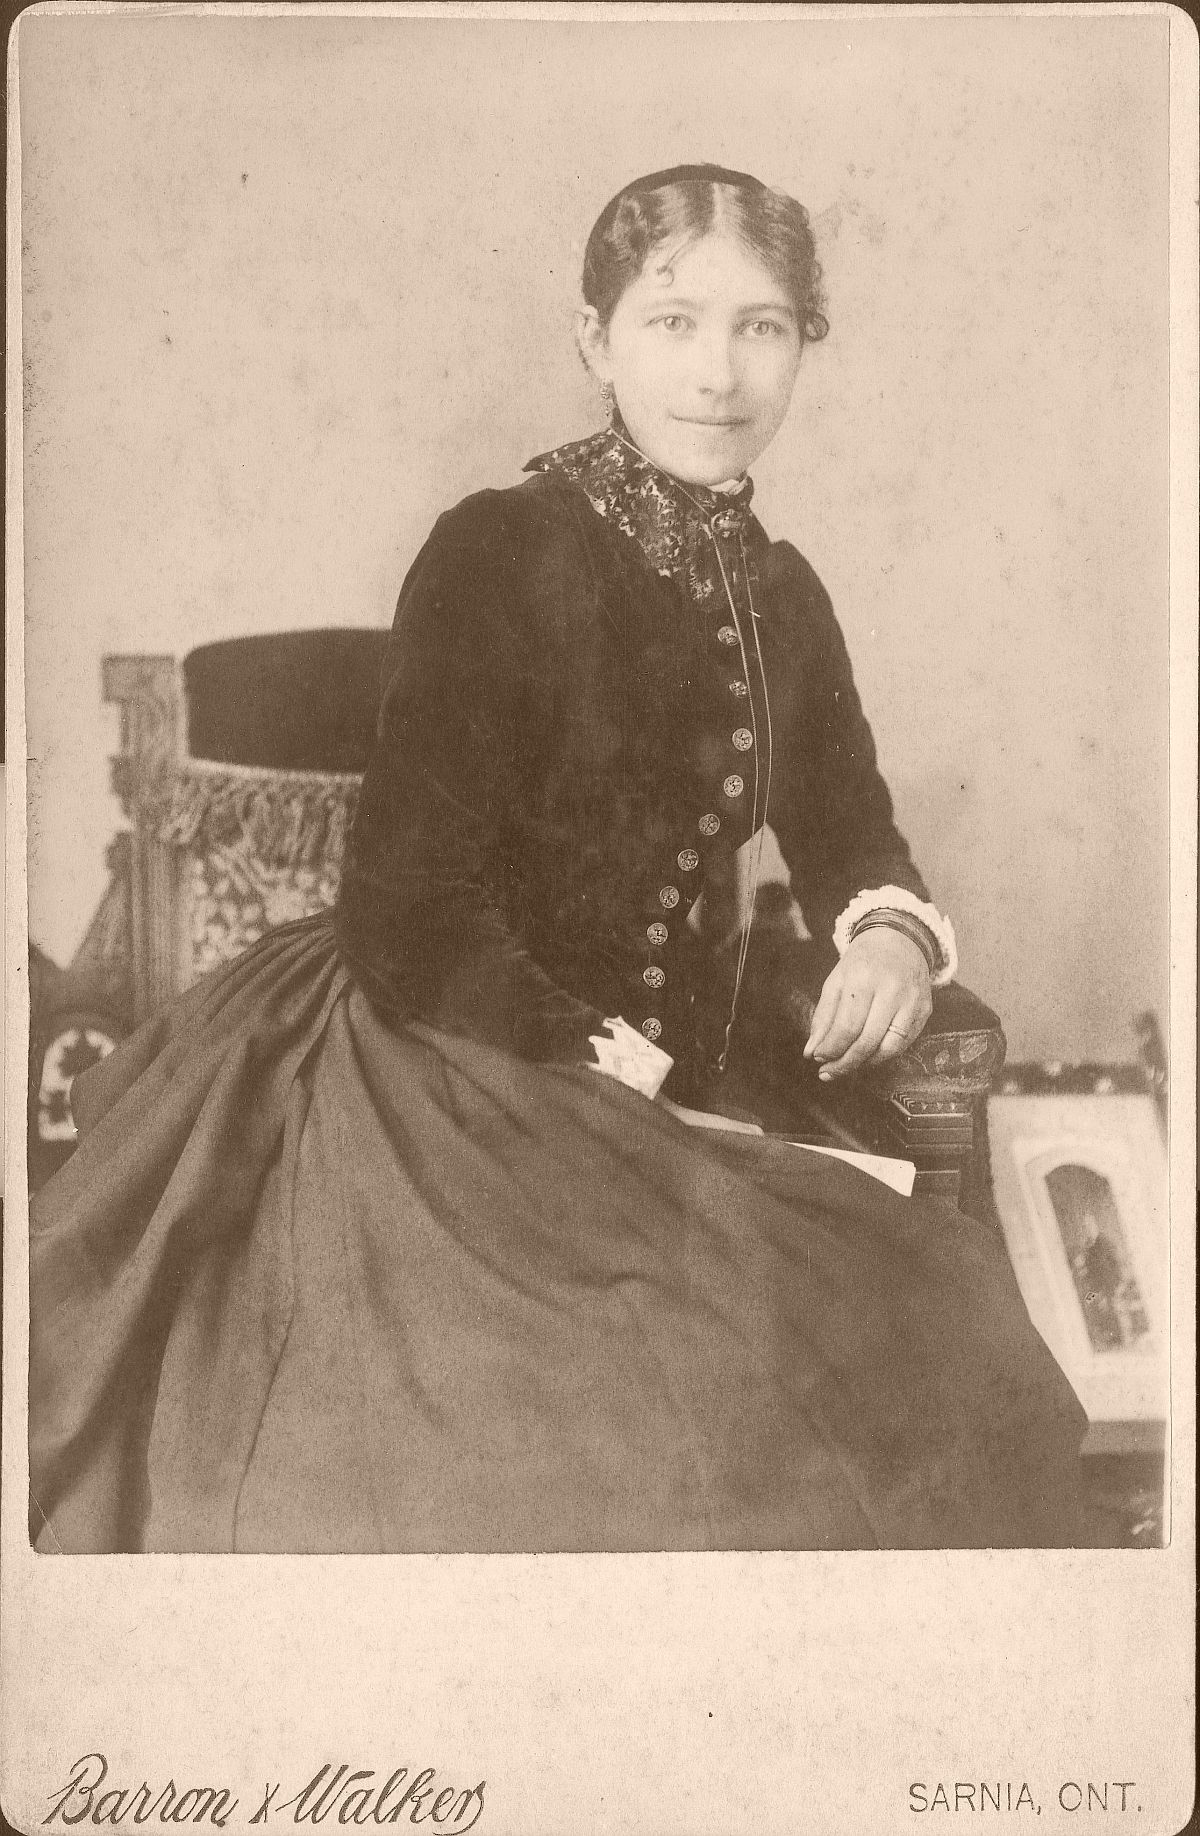 cabinet-cards-1870s-to-1880s-vintage-19th-century-victorian-era-03